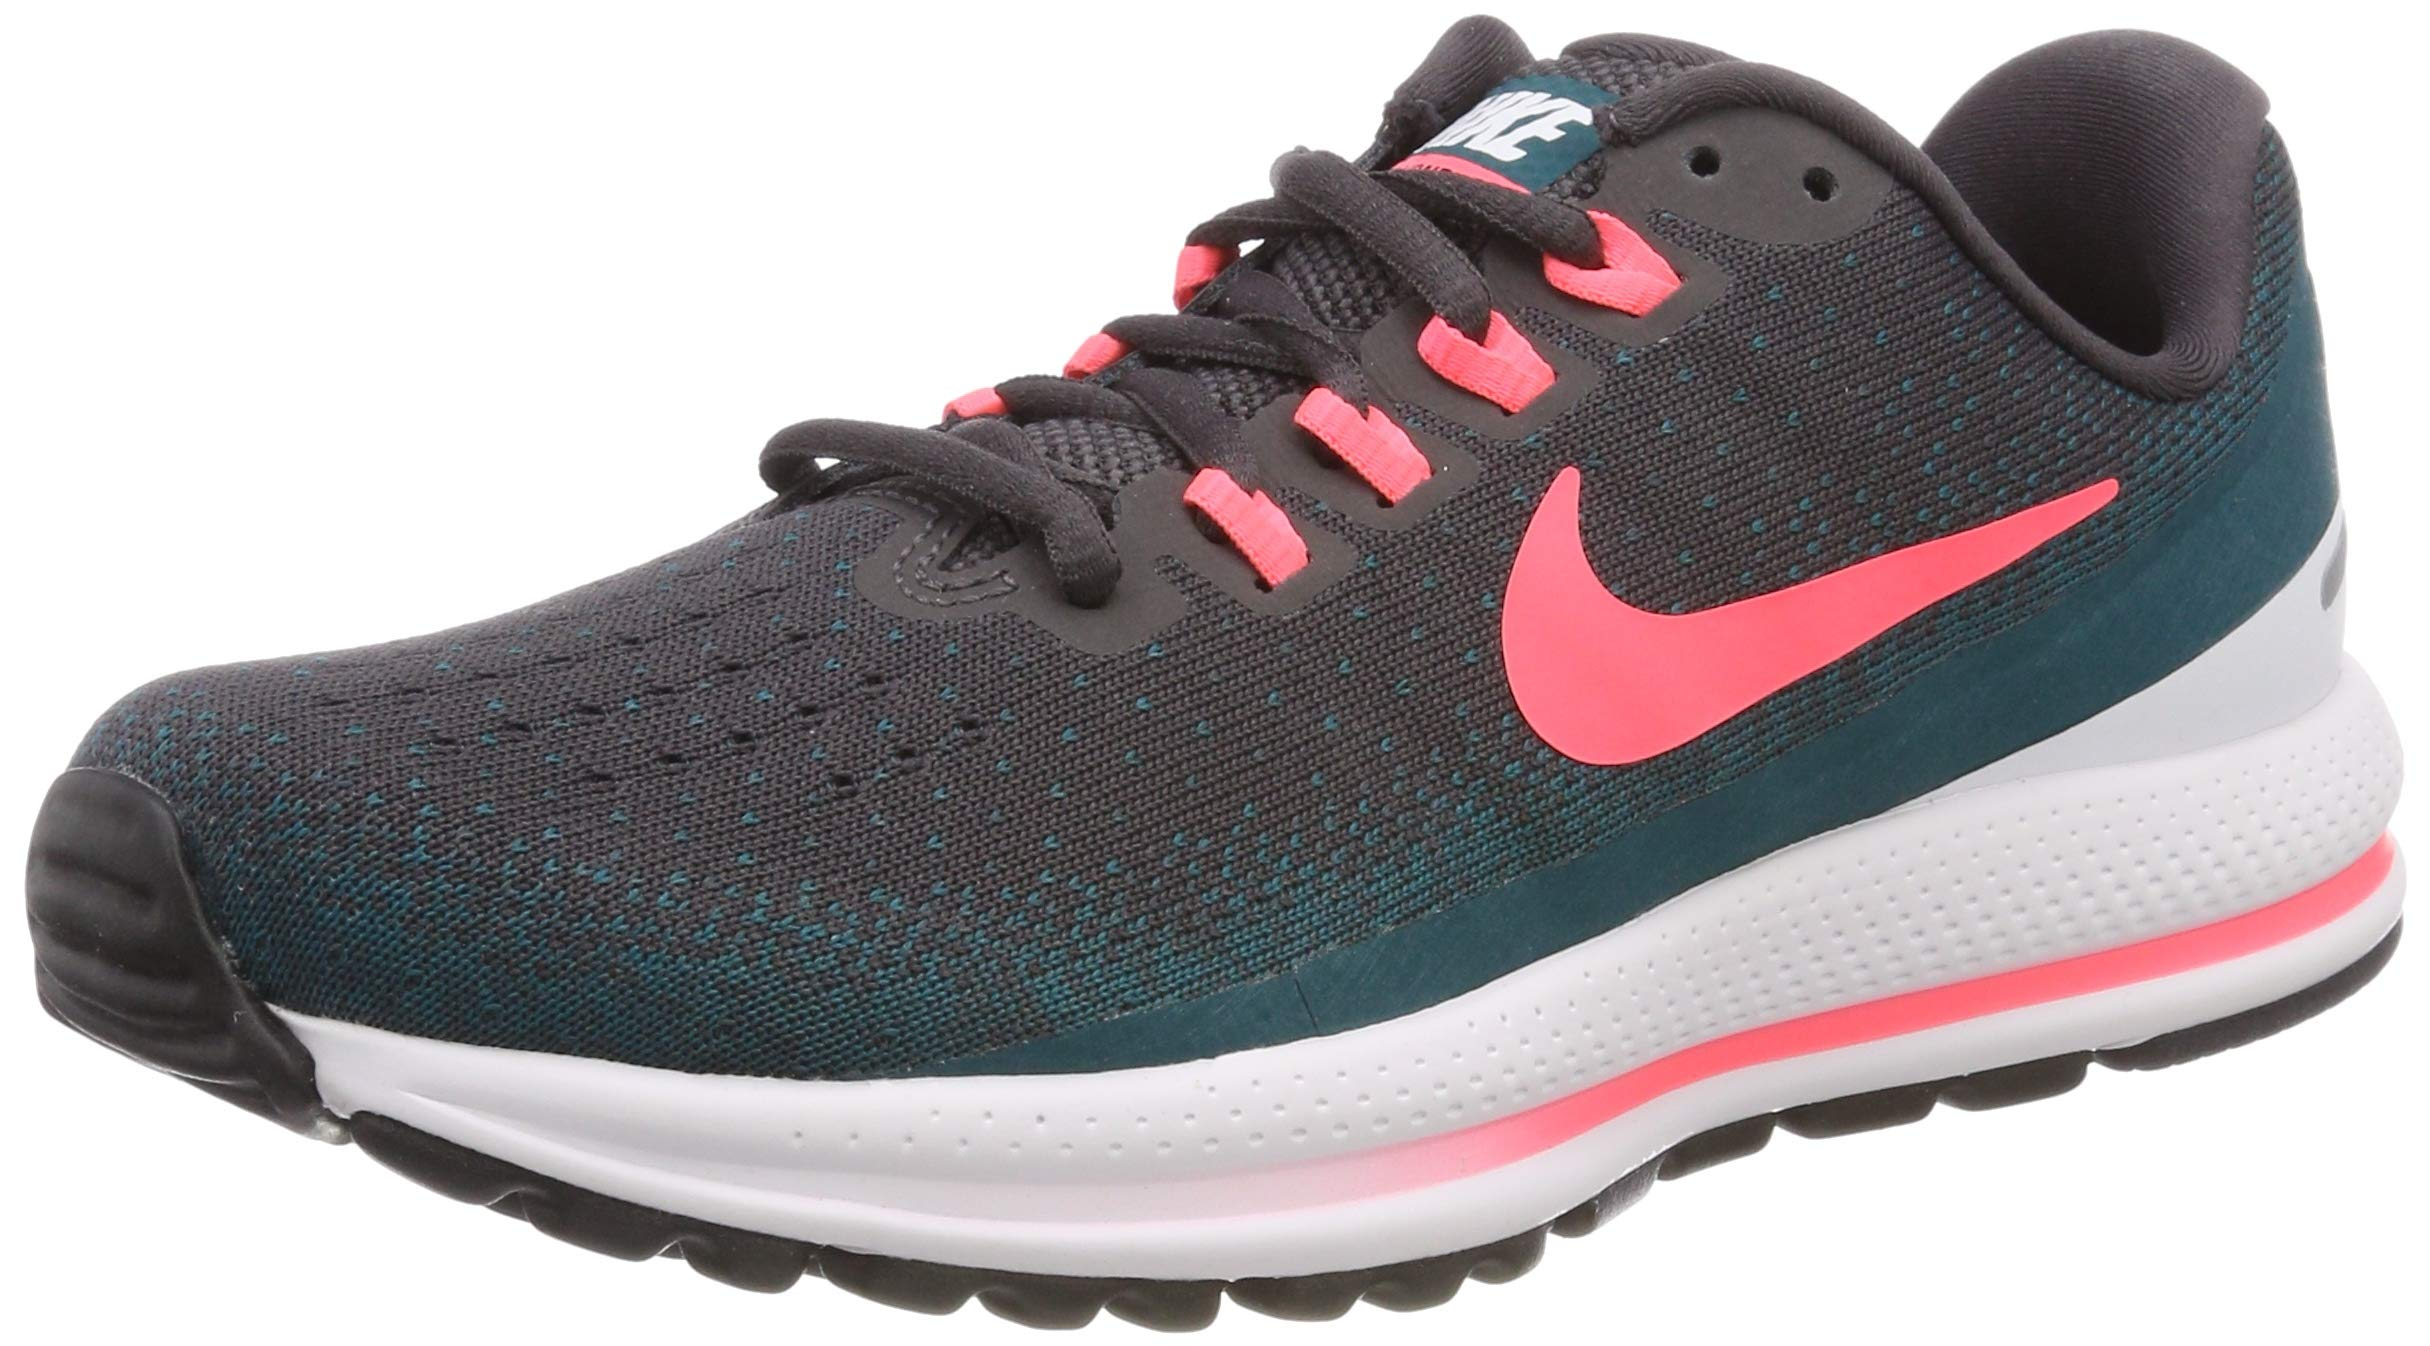 daed1ed423ac1 Galleon - Nike Women s Air Zoom Vomero 13 Running Shoe Thunder Grey HOT  Punch-GEODE Teal-White 8.5